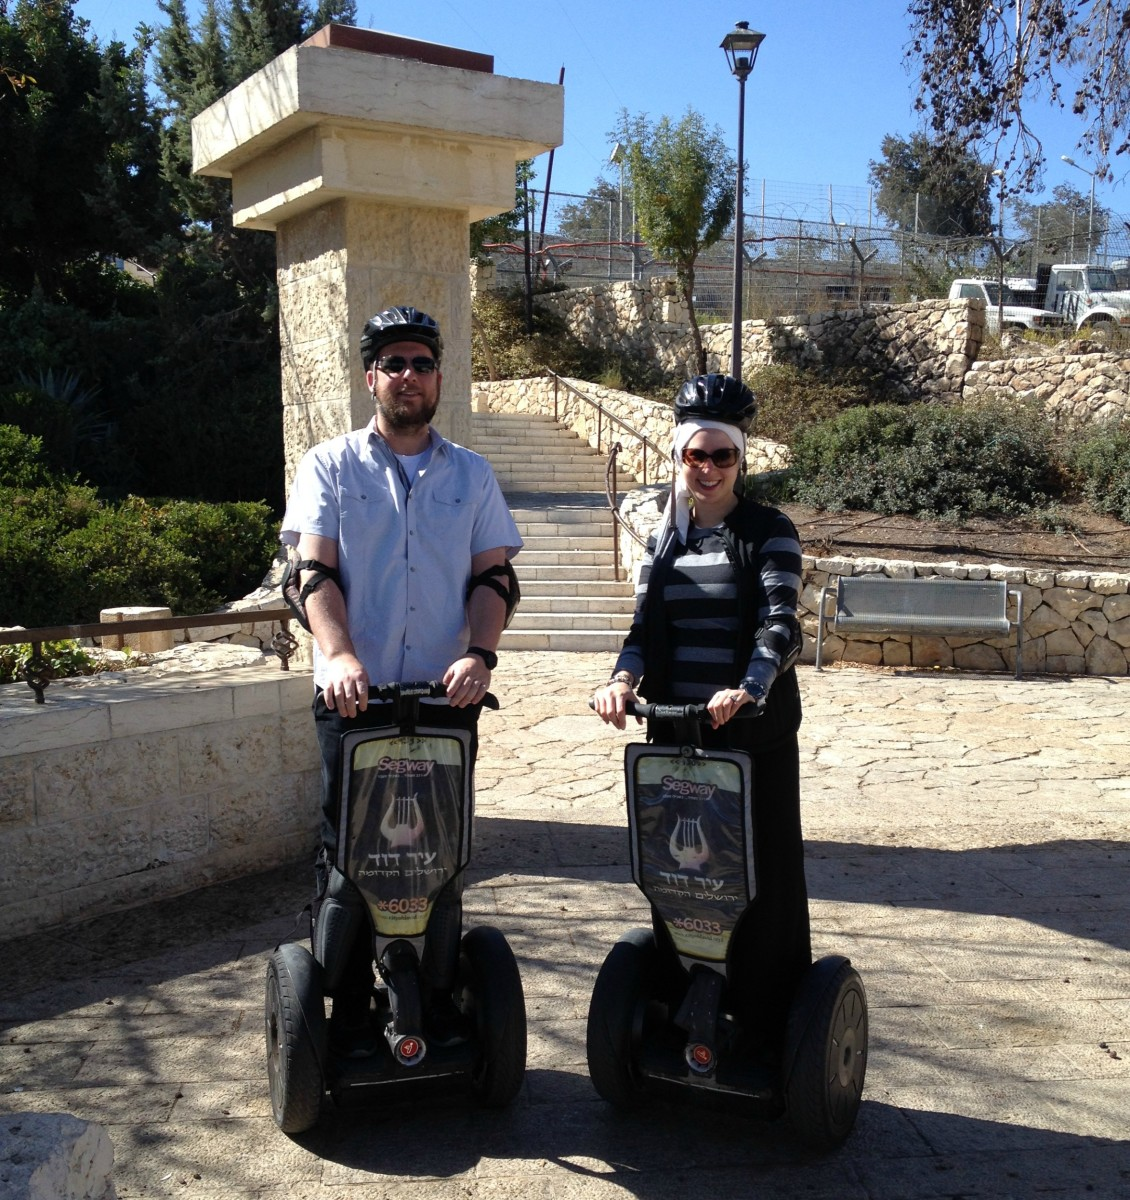 Jamie Geller On Segway Tour.jpg